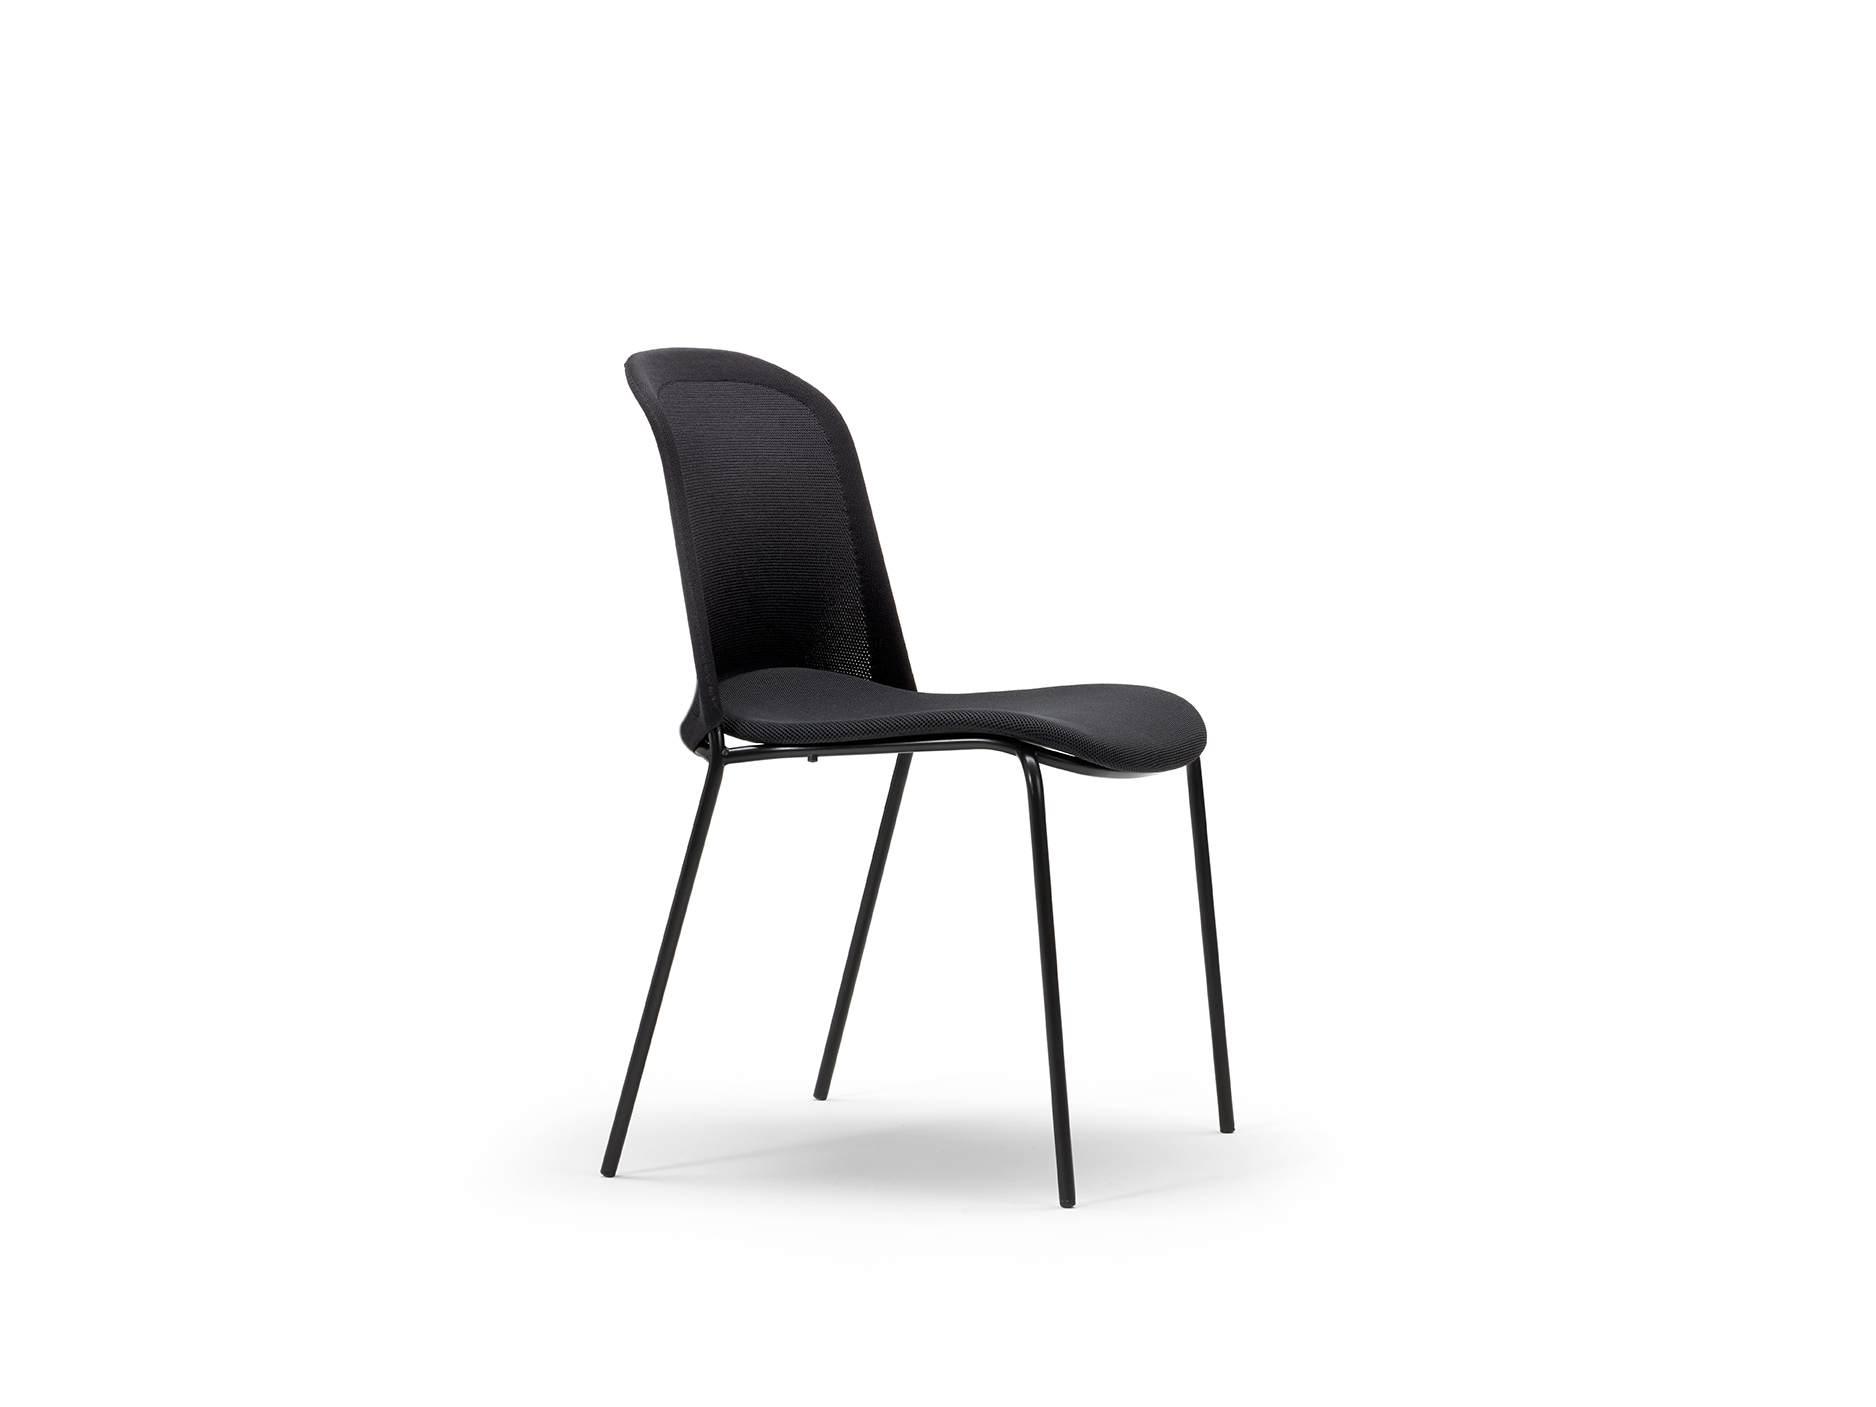 Sheer chair for Offecct - Exhibiting at Offecct, Stockholm Furniture Fair, Stand B03:11